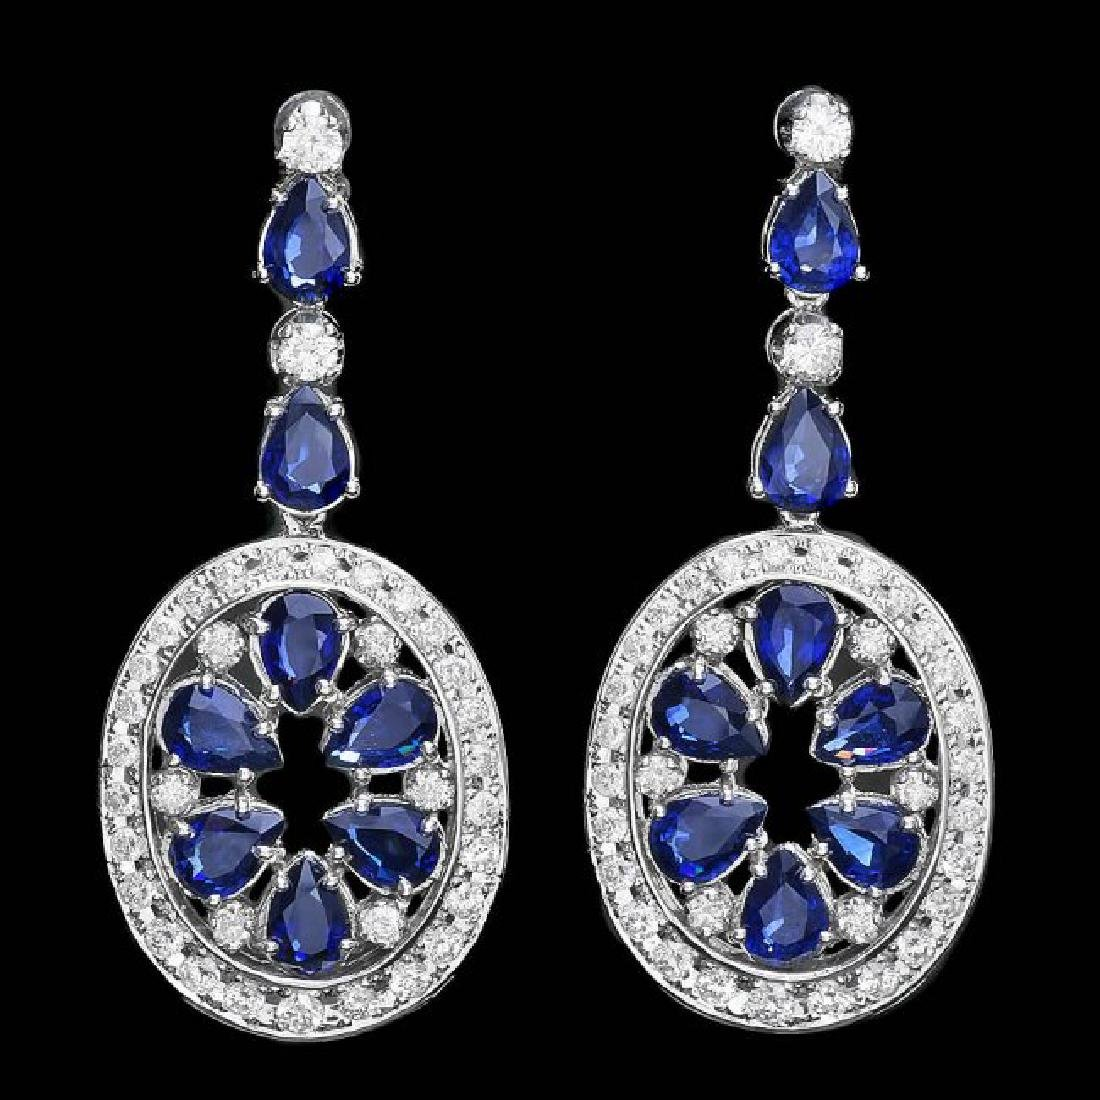 14k Gold 11.50ct Sapphire 3ct Diamond Earrings